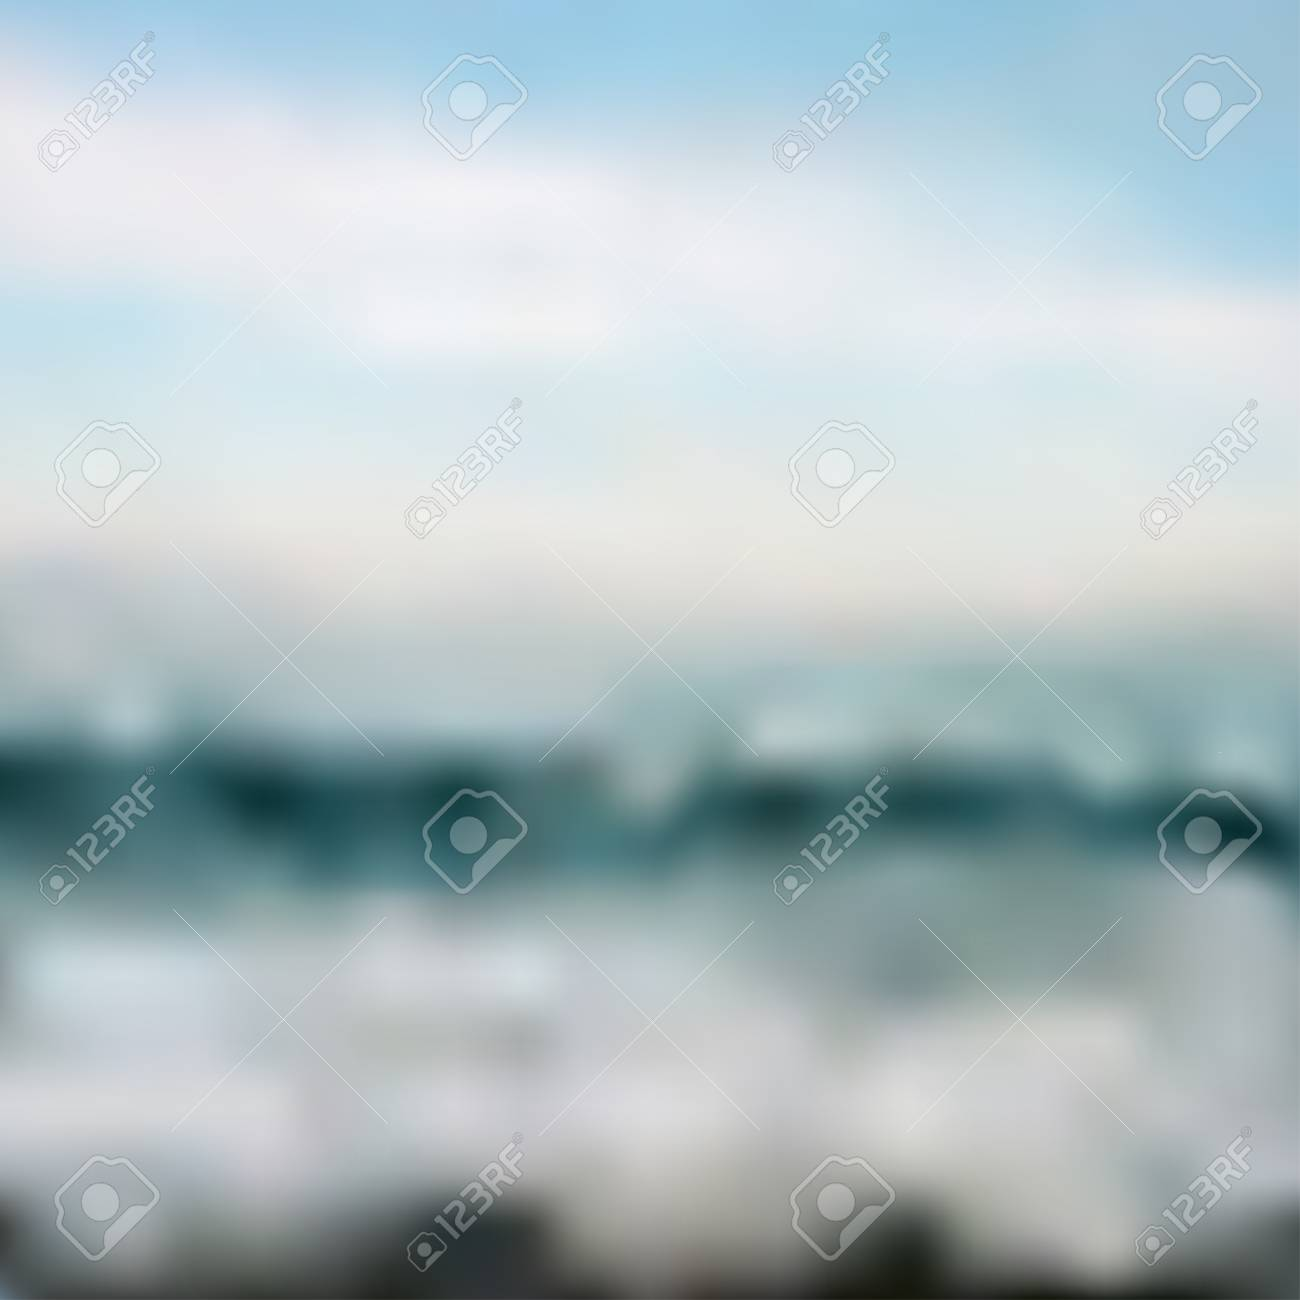 Ocean Waves And Blue Sky Vector Abstract Background Mesh Tool